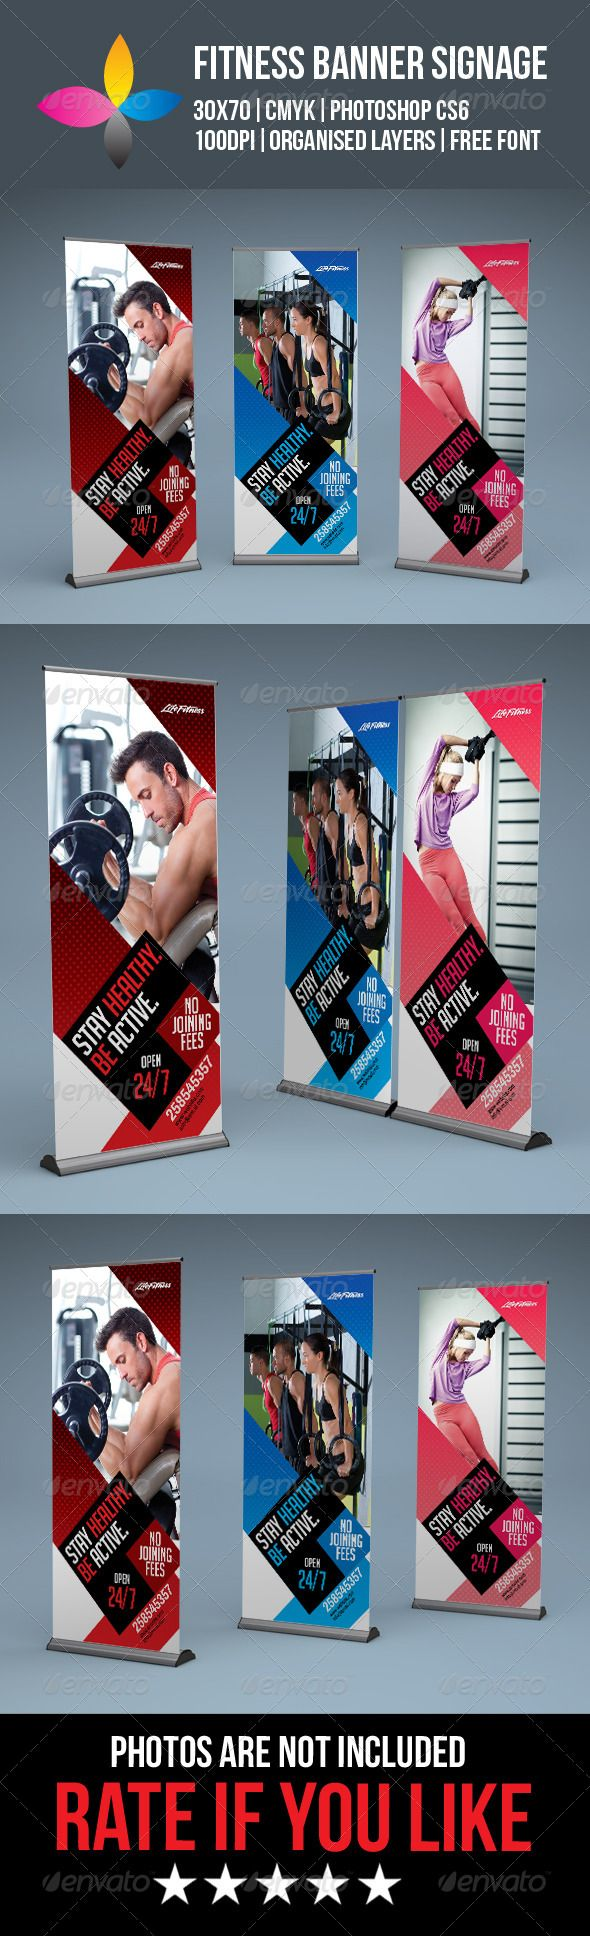 Fitness+Roll+Up+Banner+Signage